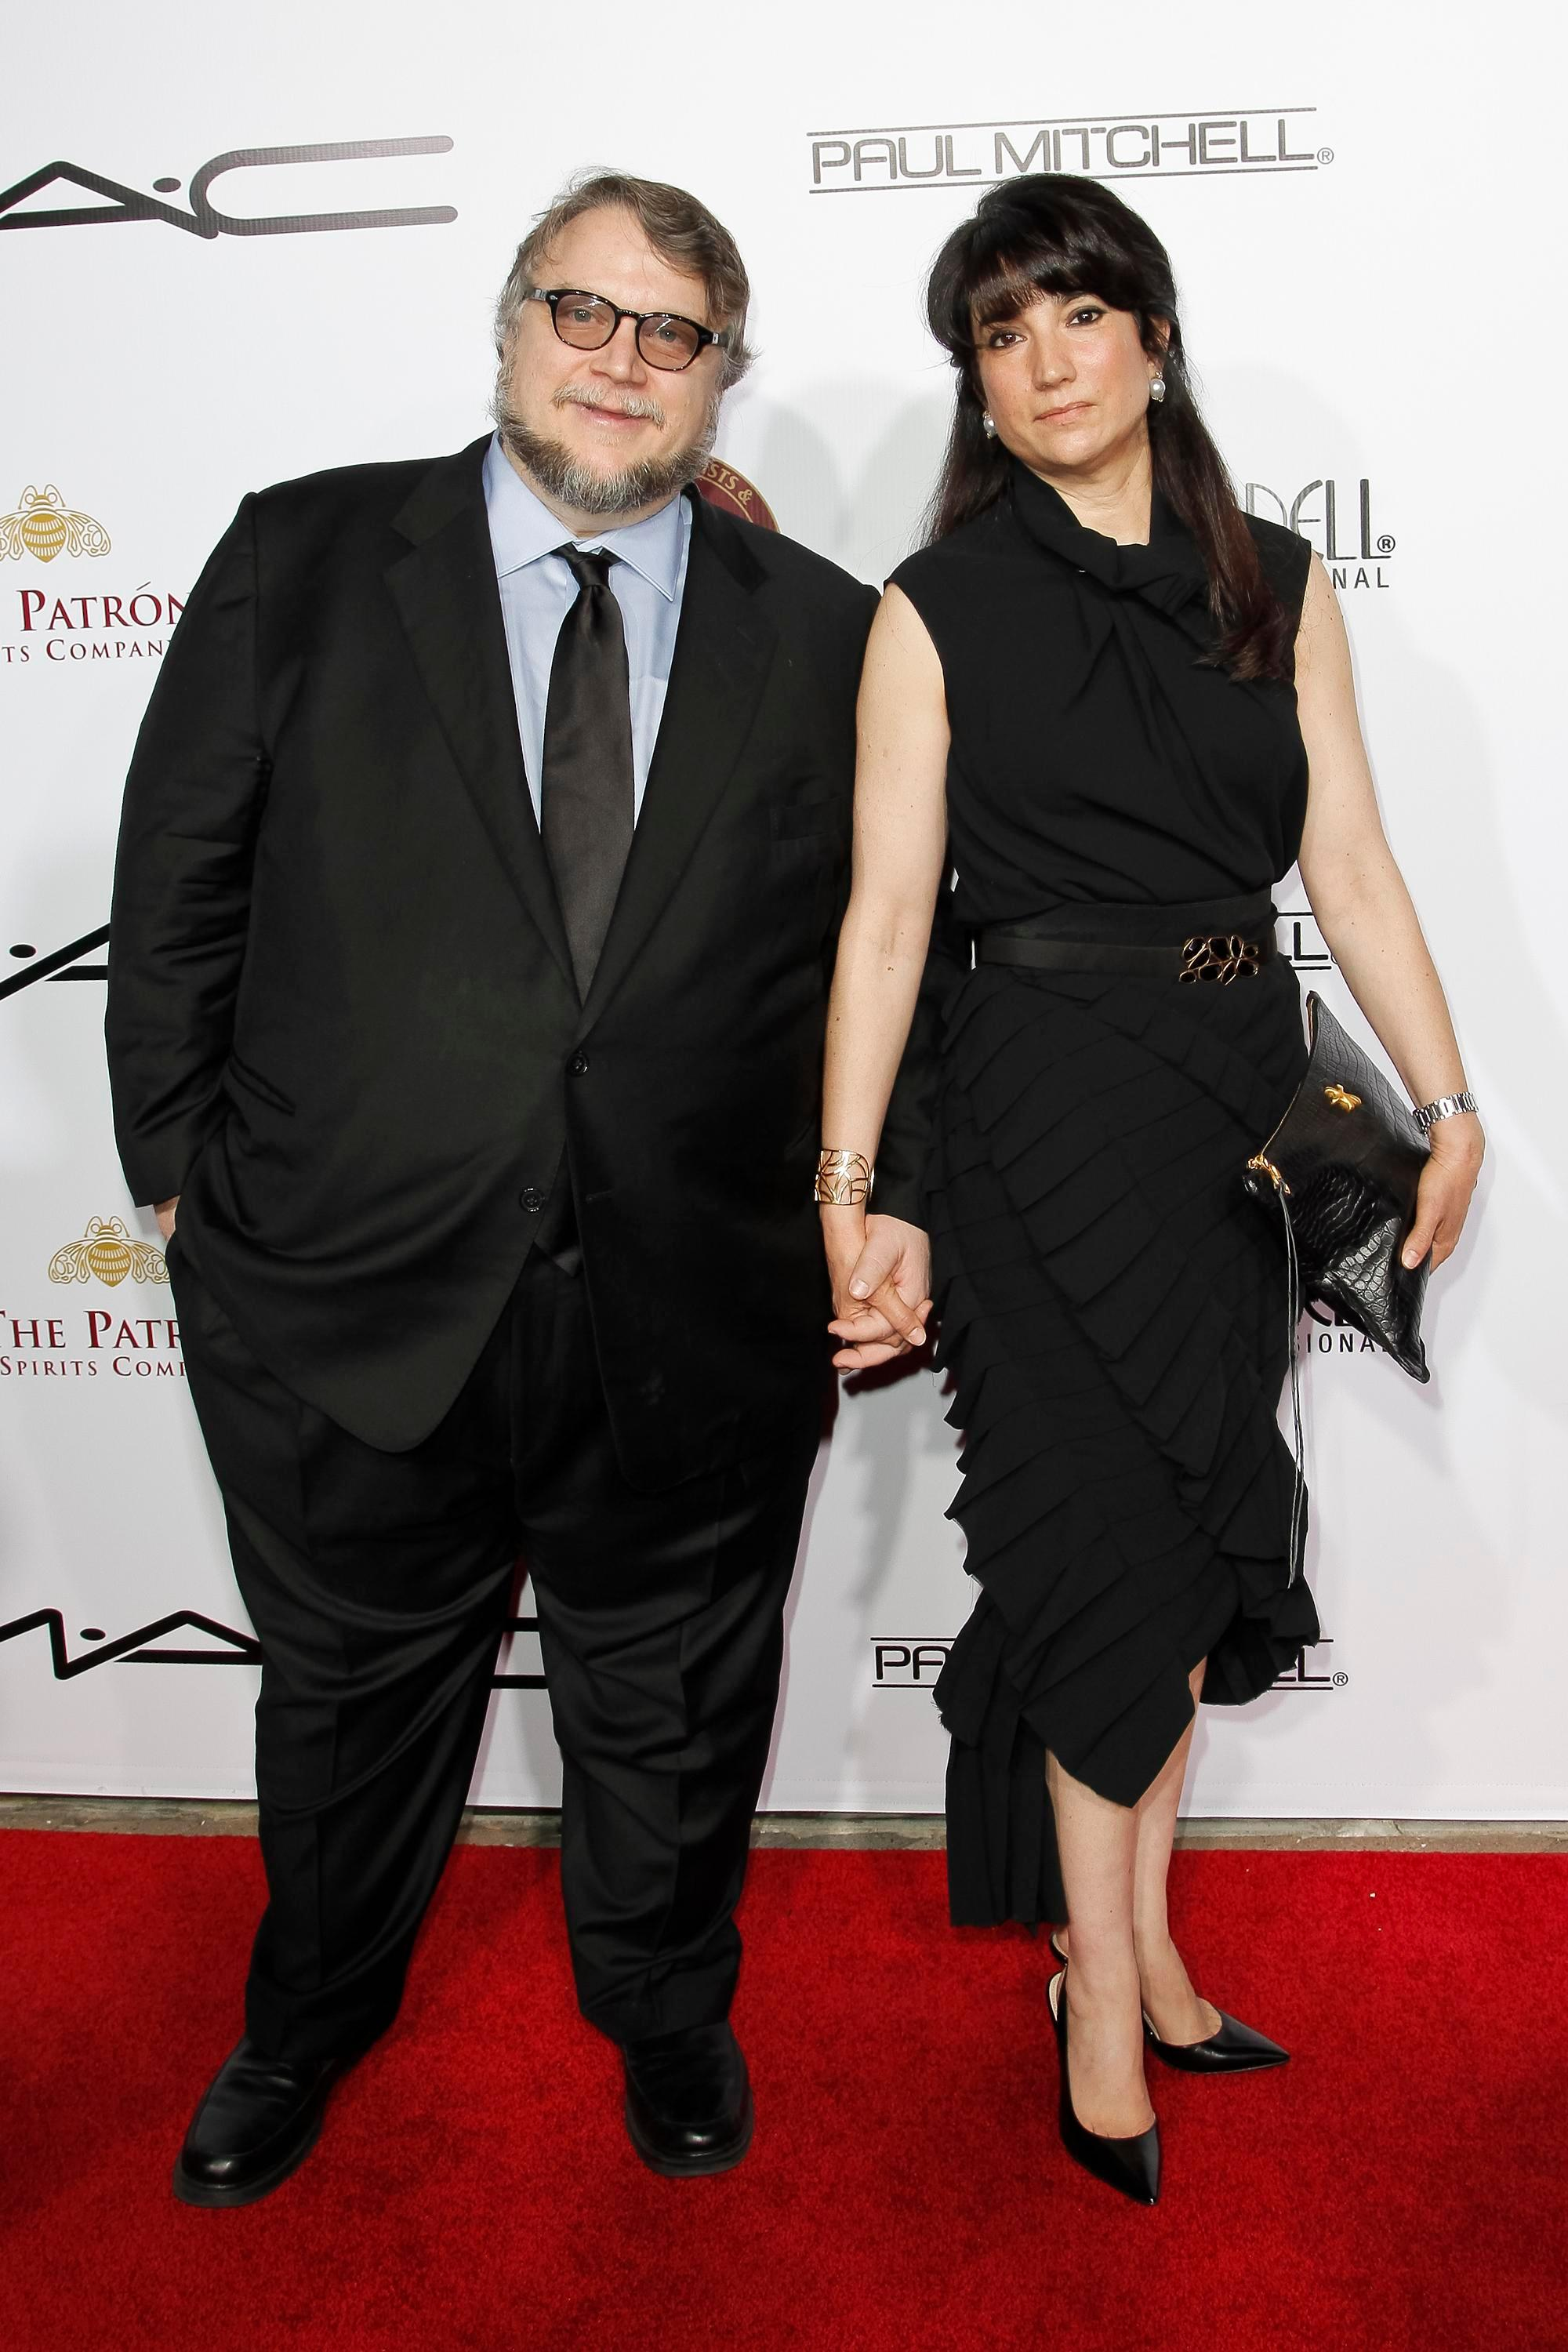 Oscar winning director Guillermo del Toro reveals he's secretly divorced wife after 31 years